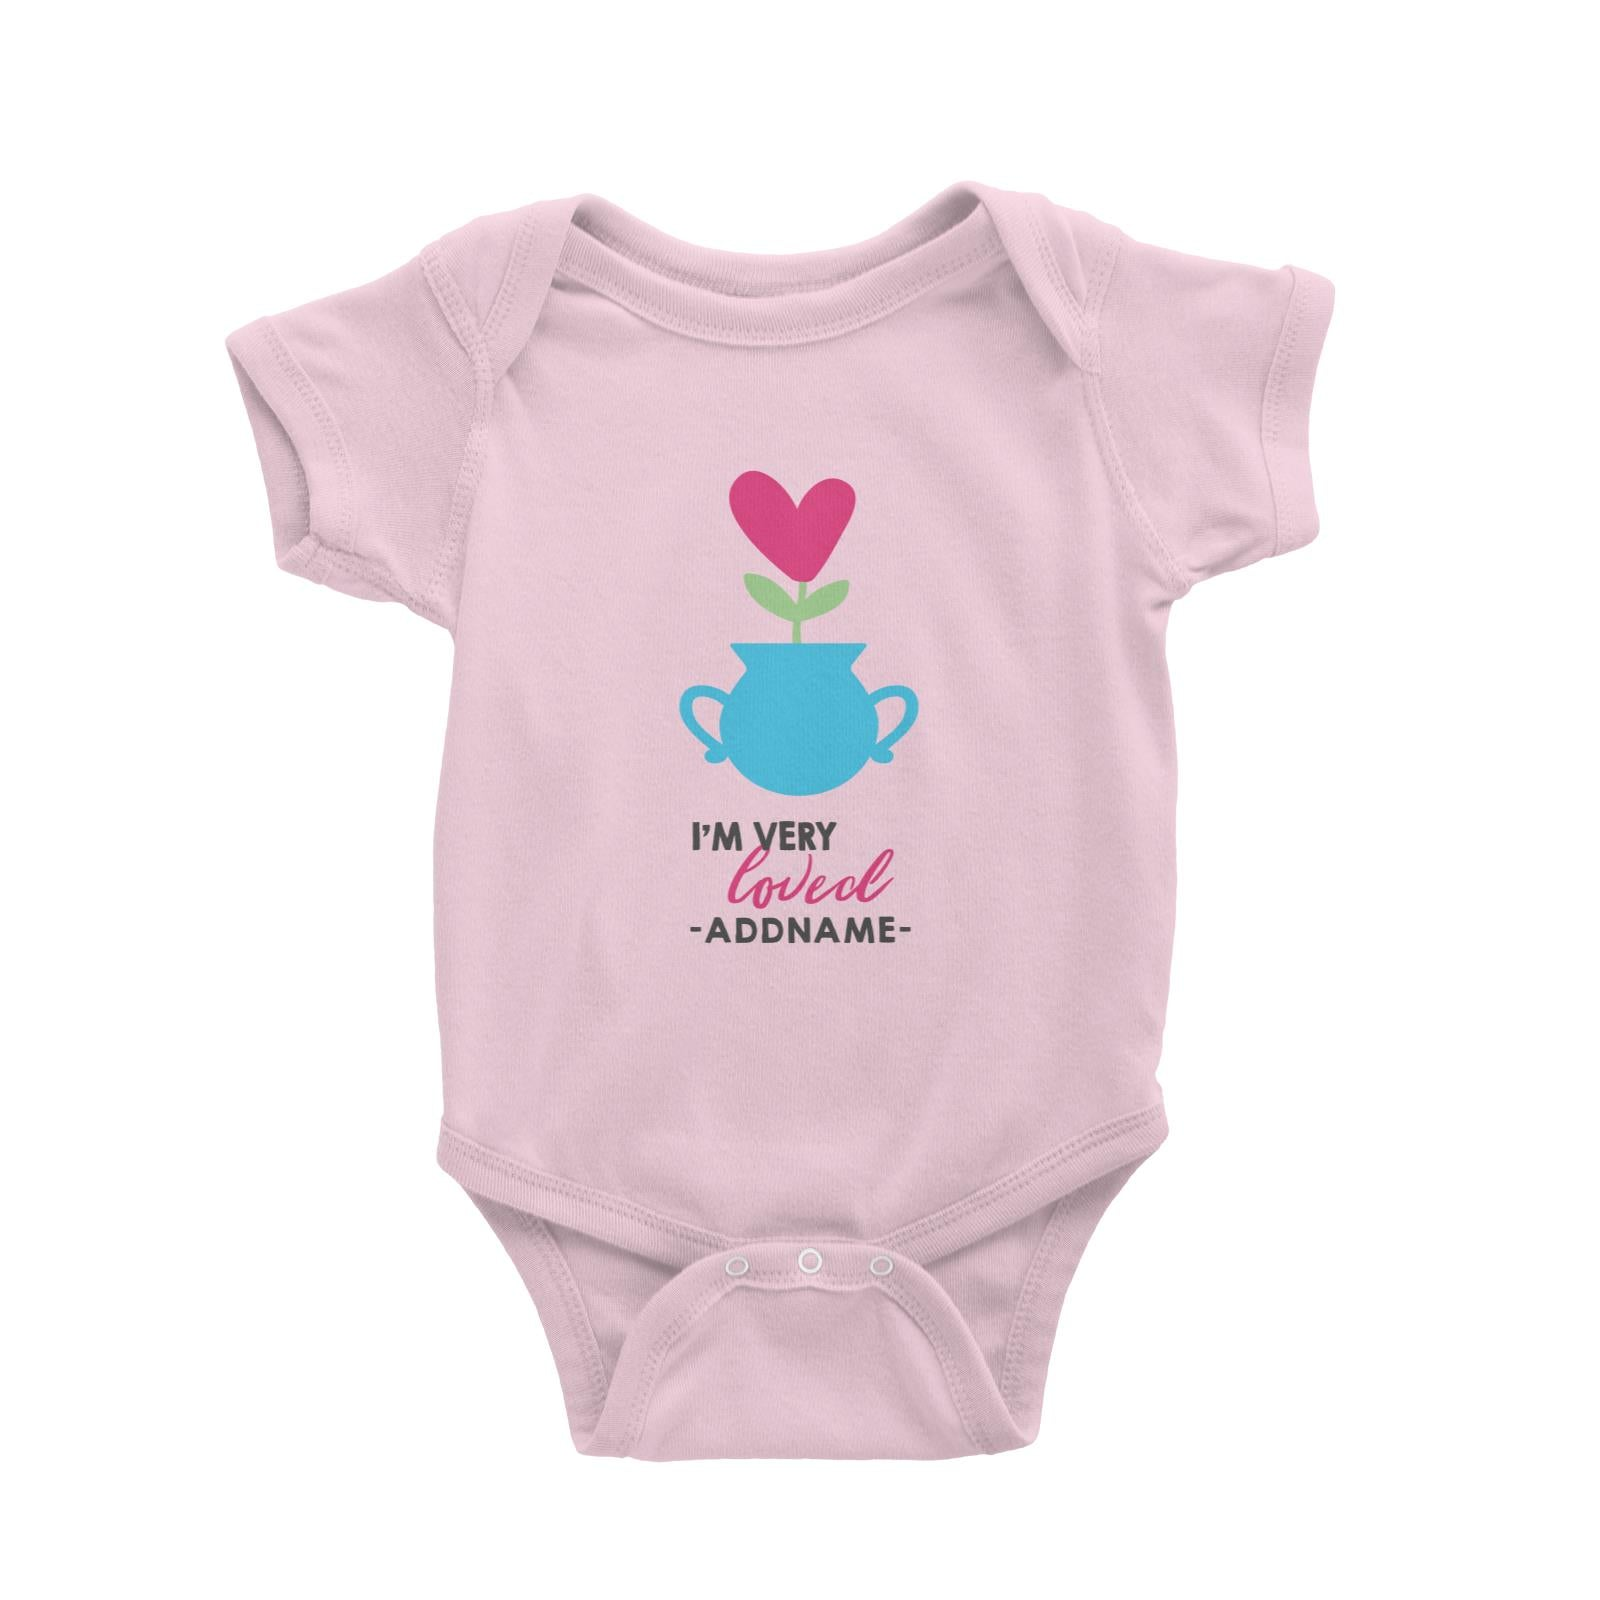 Nurturing I'm Very Loved Addname Baby Romper Love Matching Family Personalizable Designs